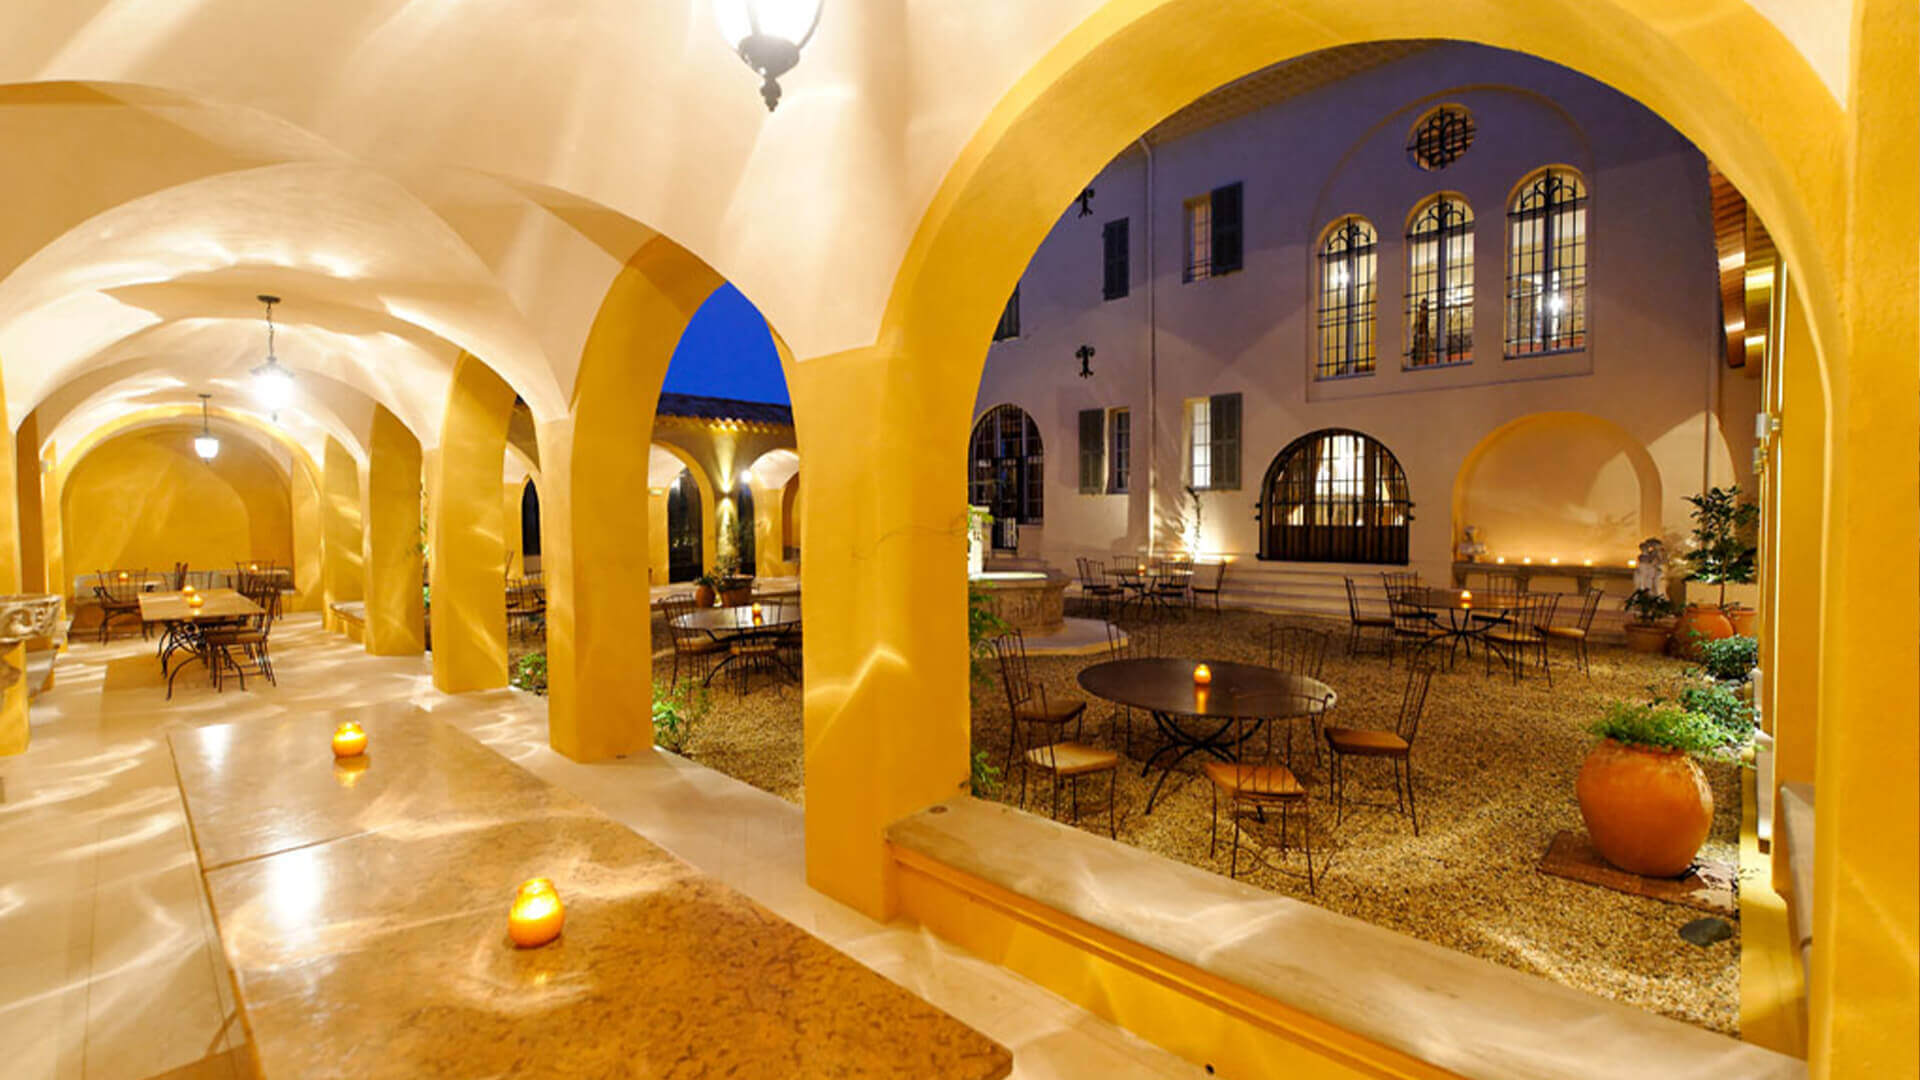 Large luxury Chateau courtyard with arches